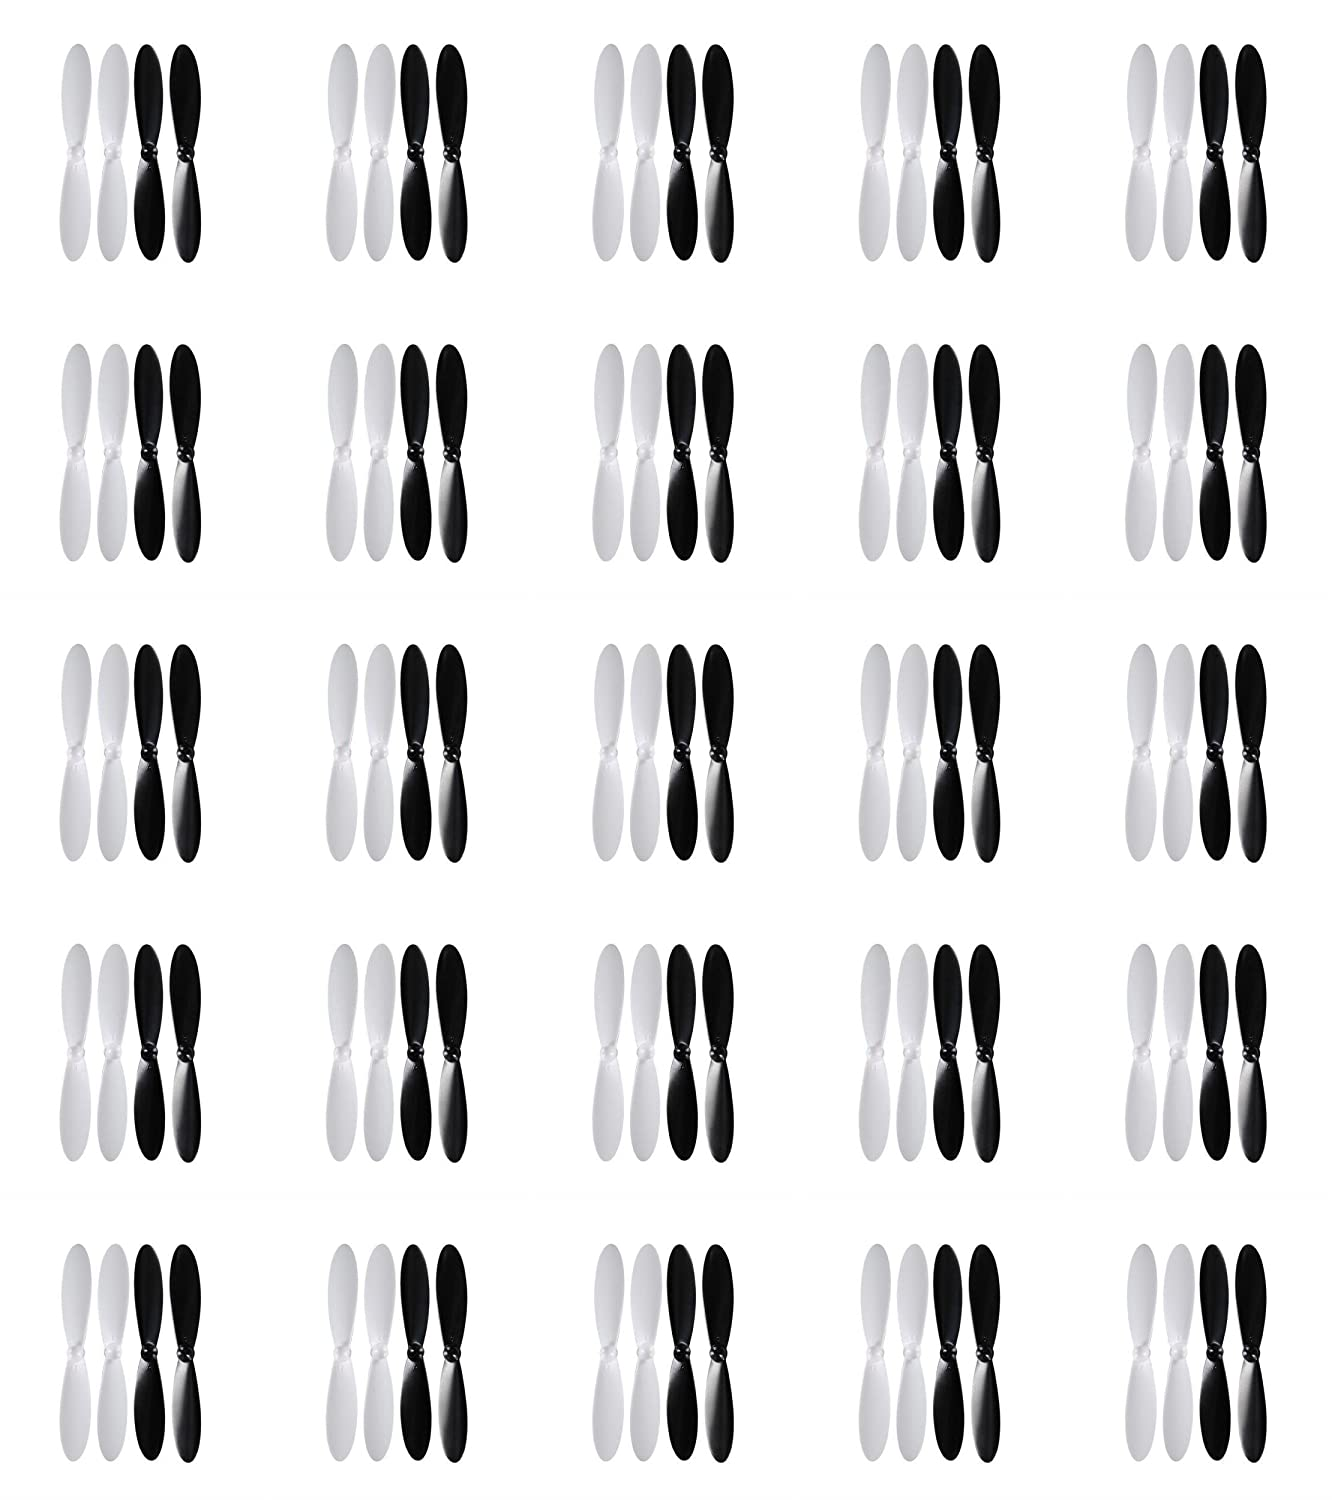 25 x Quantity of Carson X4 Cam Quadcopter Propeller Blades Props Rotor Set Main Blades Black and White   B013PRM3RW